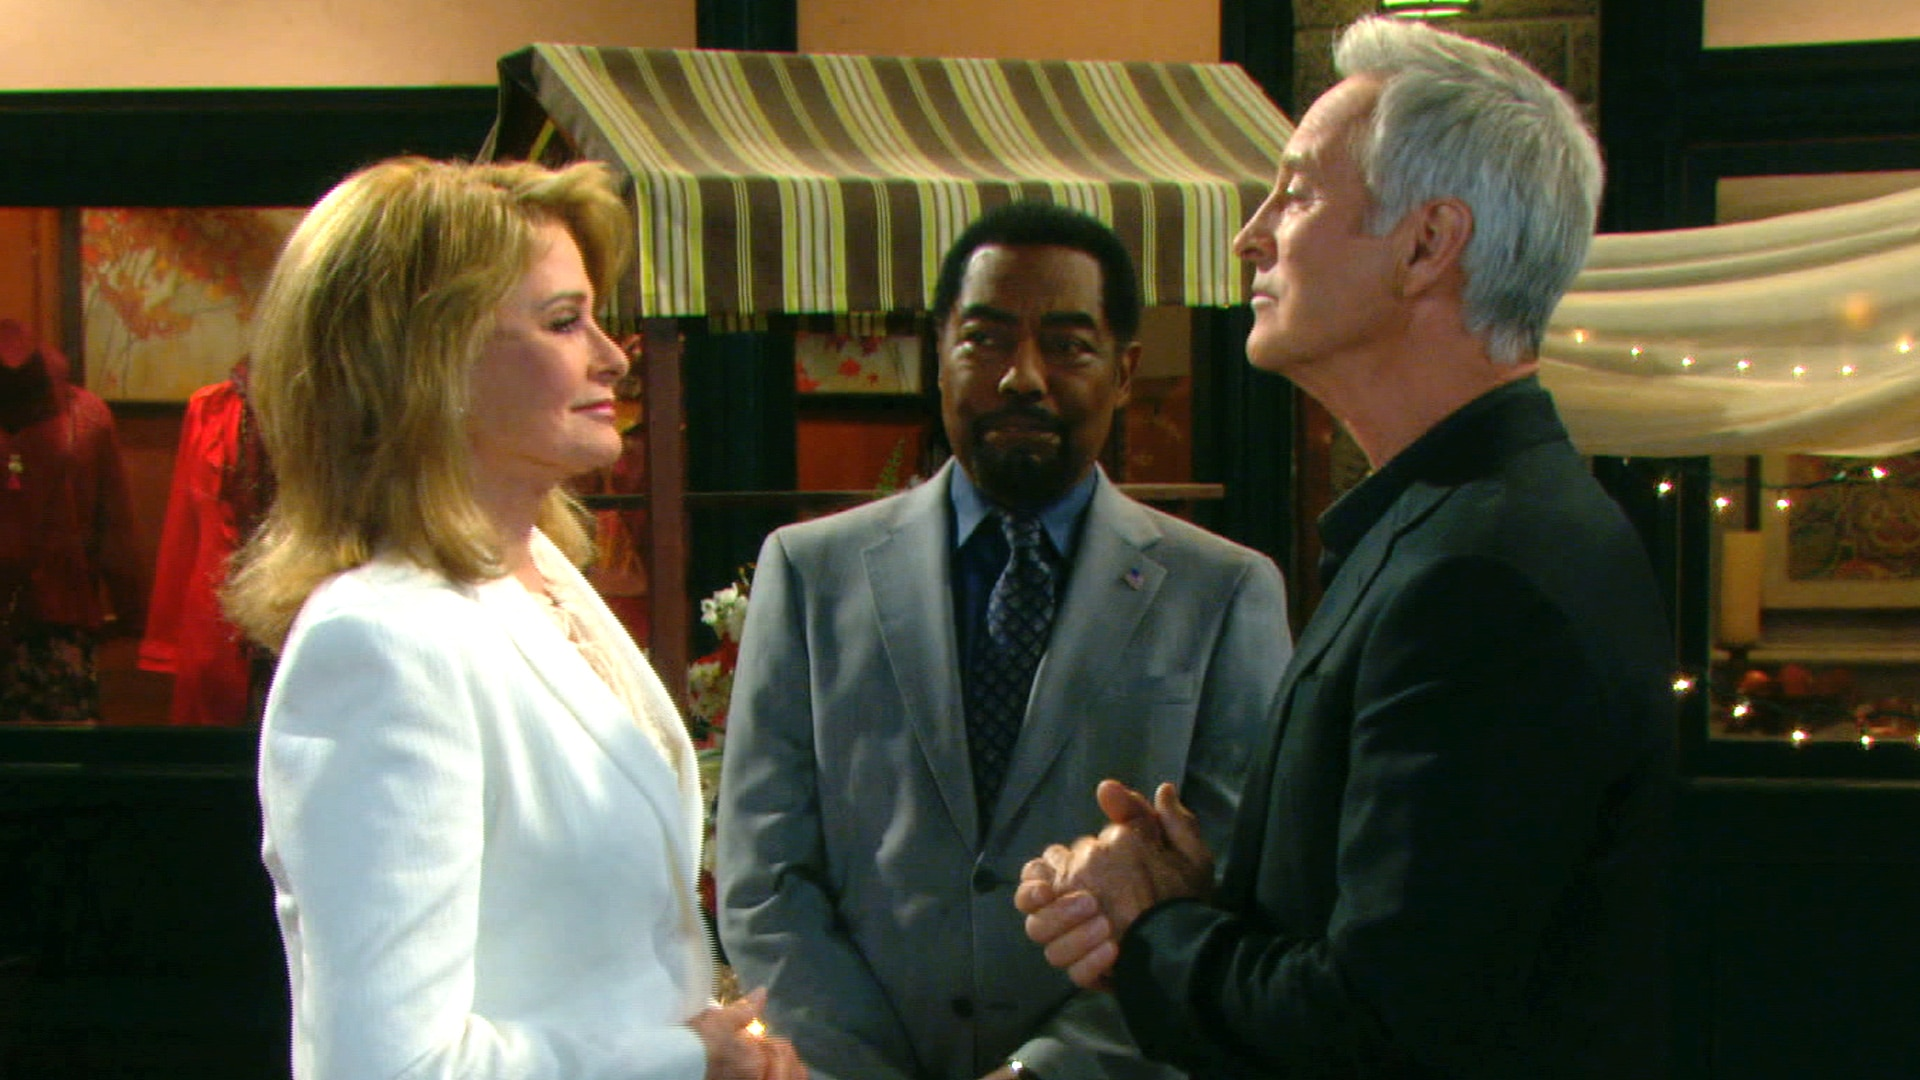 Days of Our Lives 11-15-19 Recap 15th November 2019 - Spoilers TV